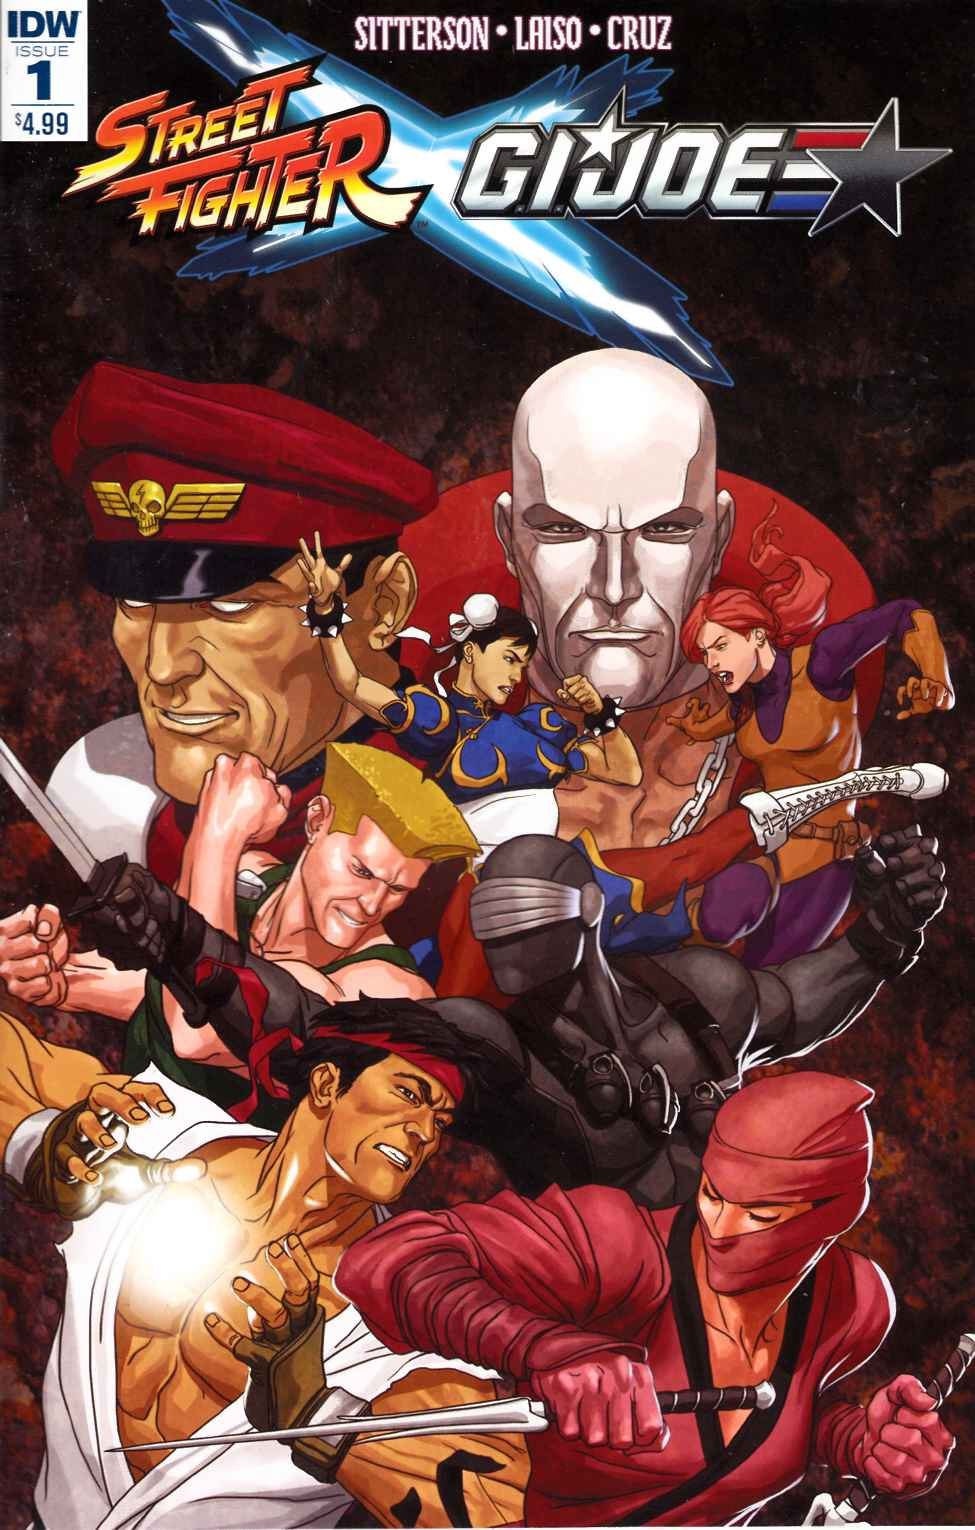 Street Fighter X GI Joe #1 [IDW Comic] THUMBNAIL